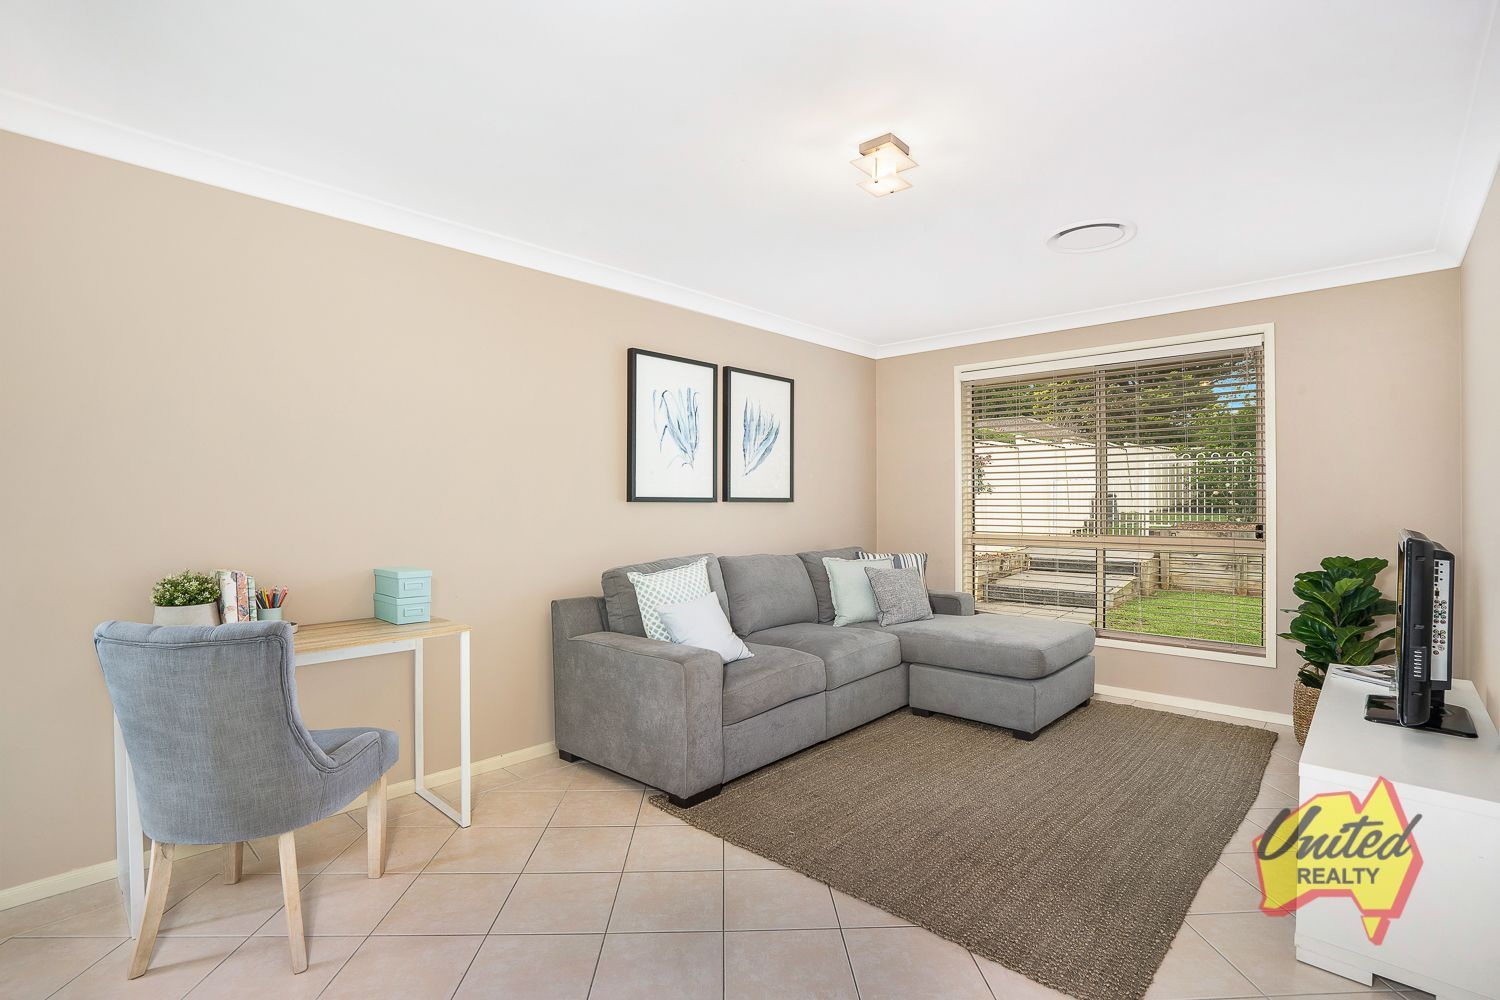 46a Merlin Street The Oaks 2570